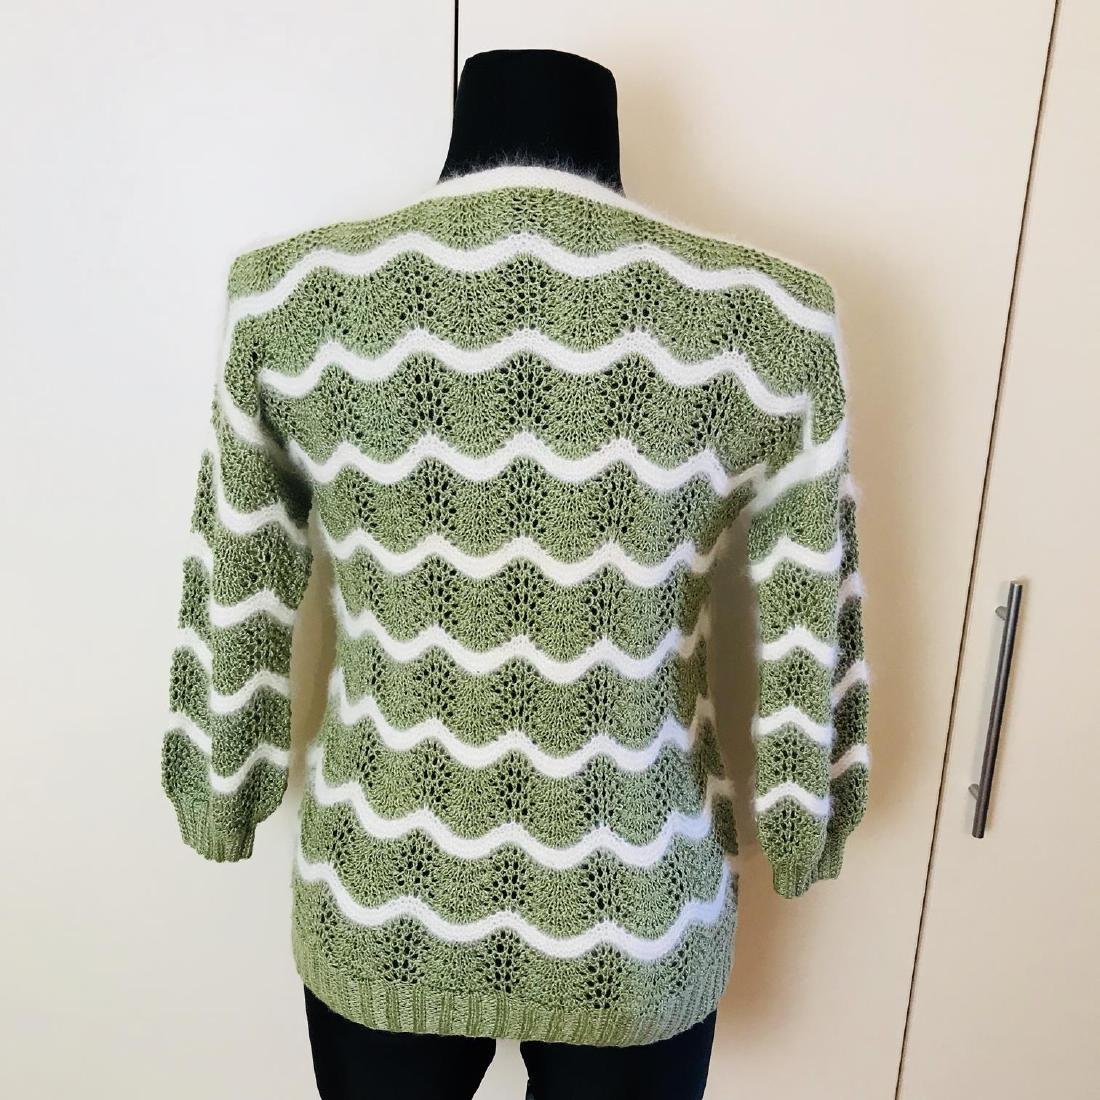 Vintage Women's Green Sweater Size EUR 38 US 8 - 5